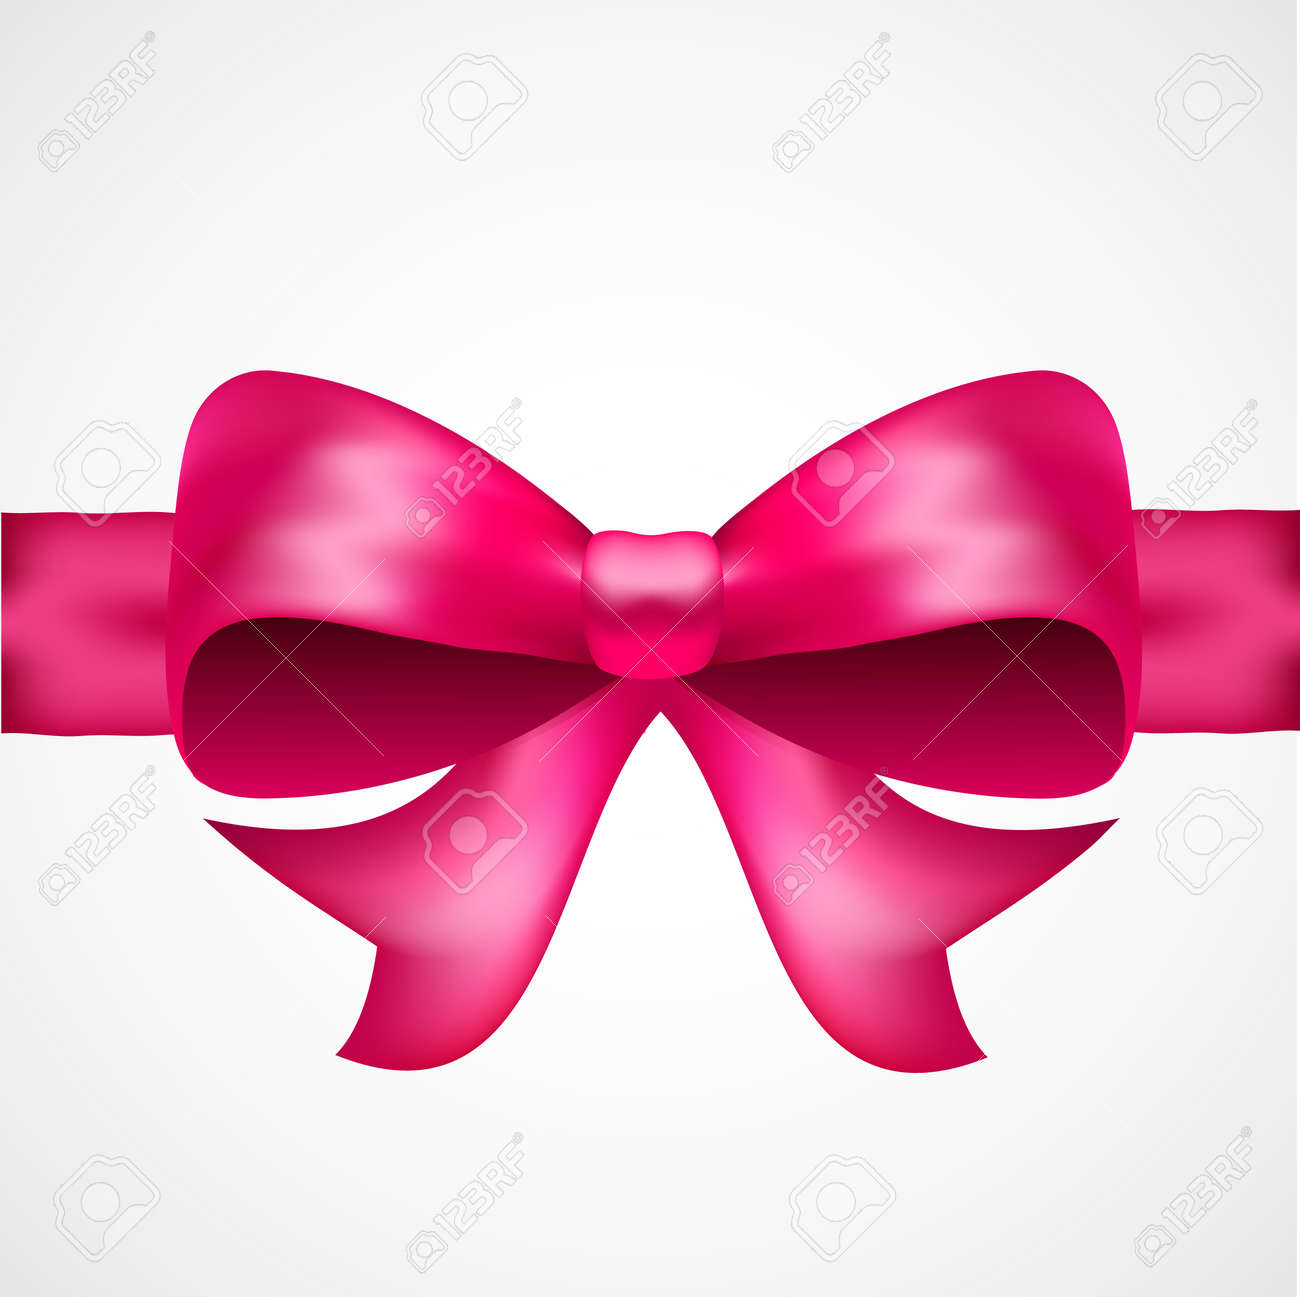 Pink vector satin bow for presents, cards, gift cards, birthday, holidays and other - 158399026